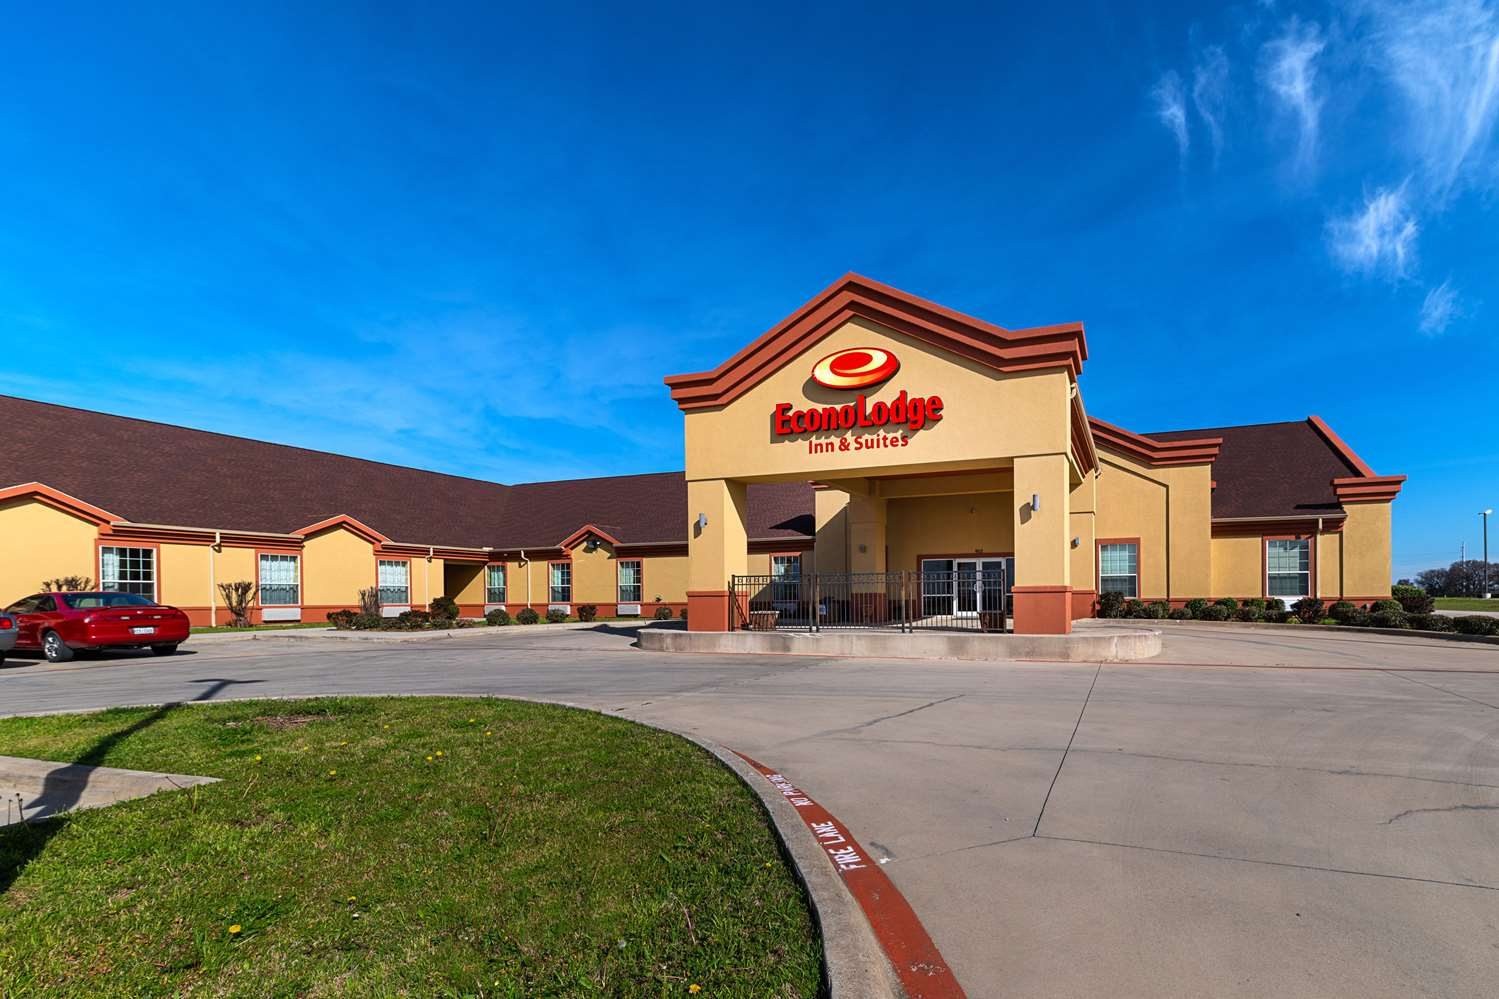 Econo Lodge Inn & Suites Bridgeport